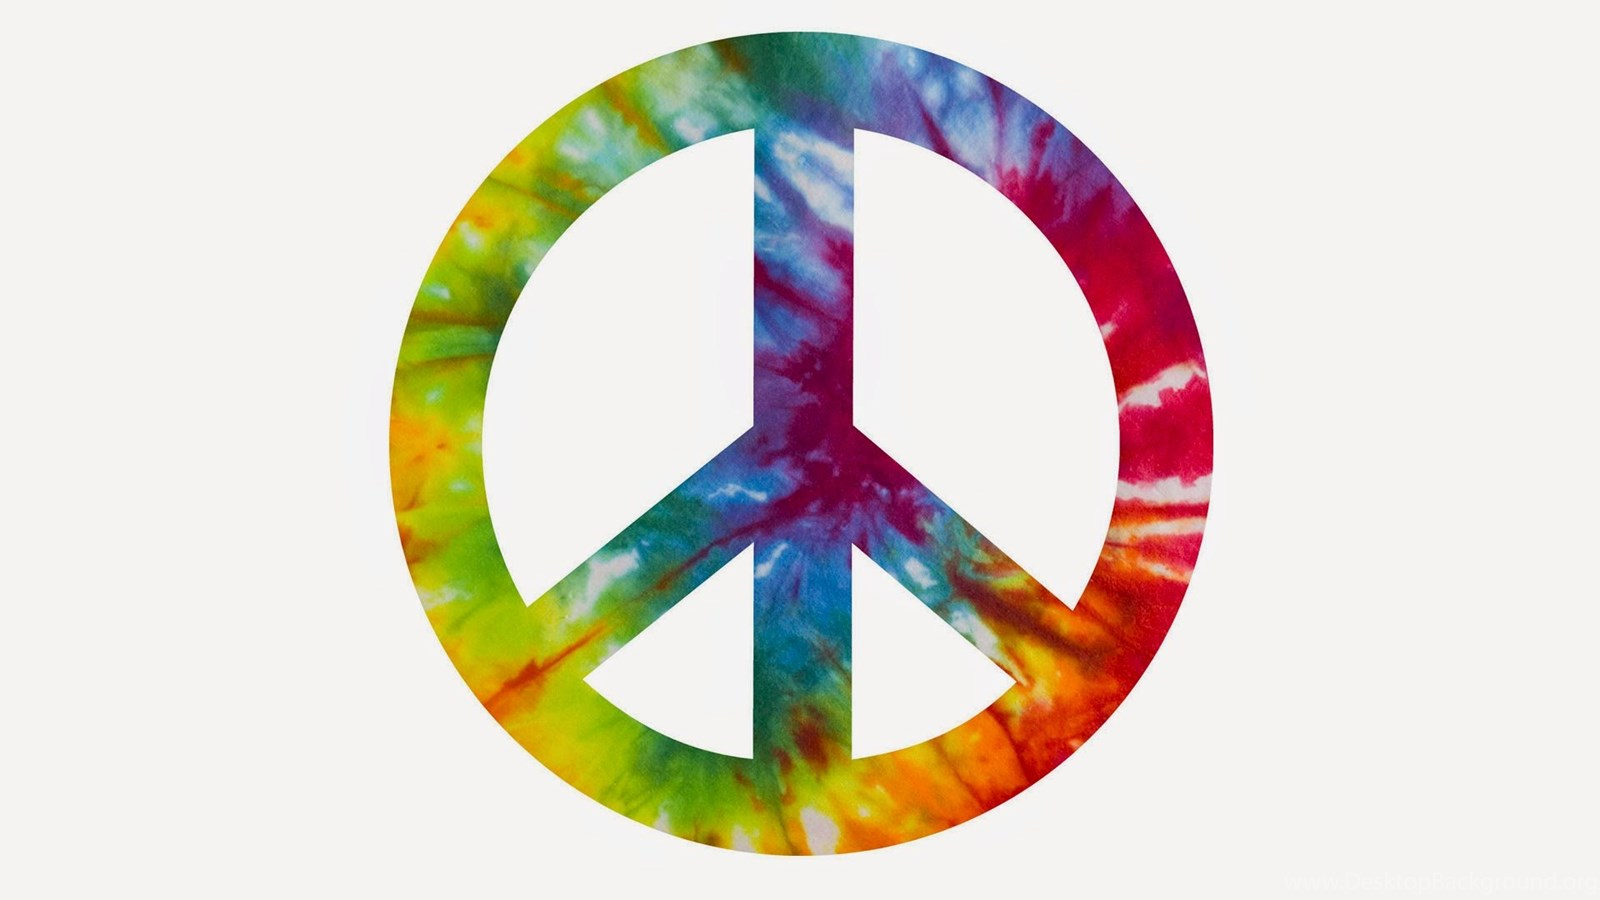 Peace love logo hd images desktop background - Peace hd wallpapers free download ...